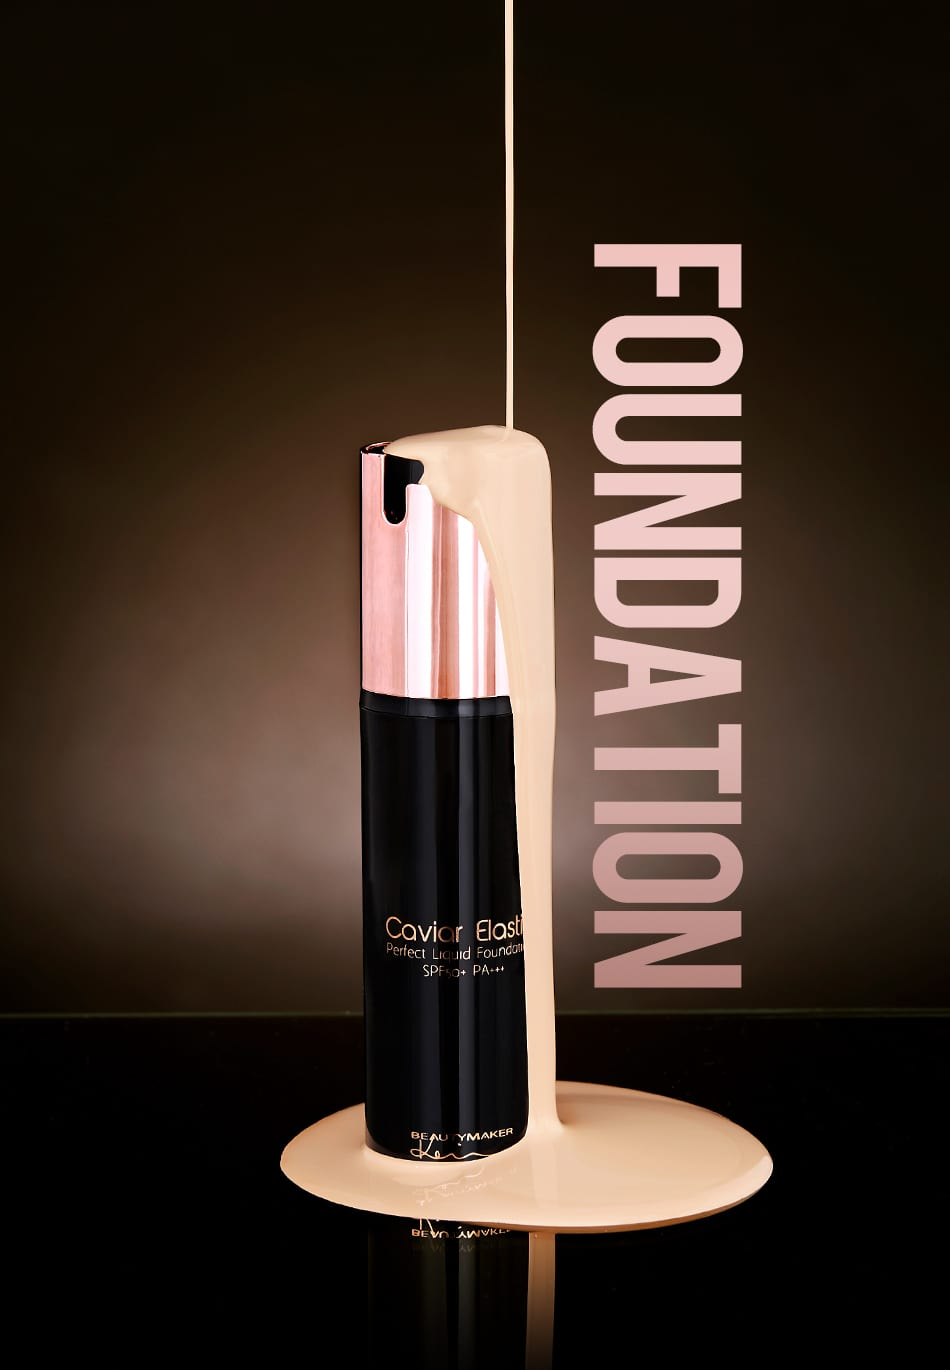 Caviar Elastic Liquid Foundation - Product Packaging 01